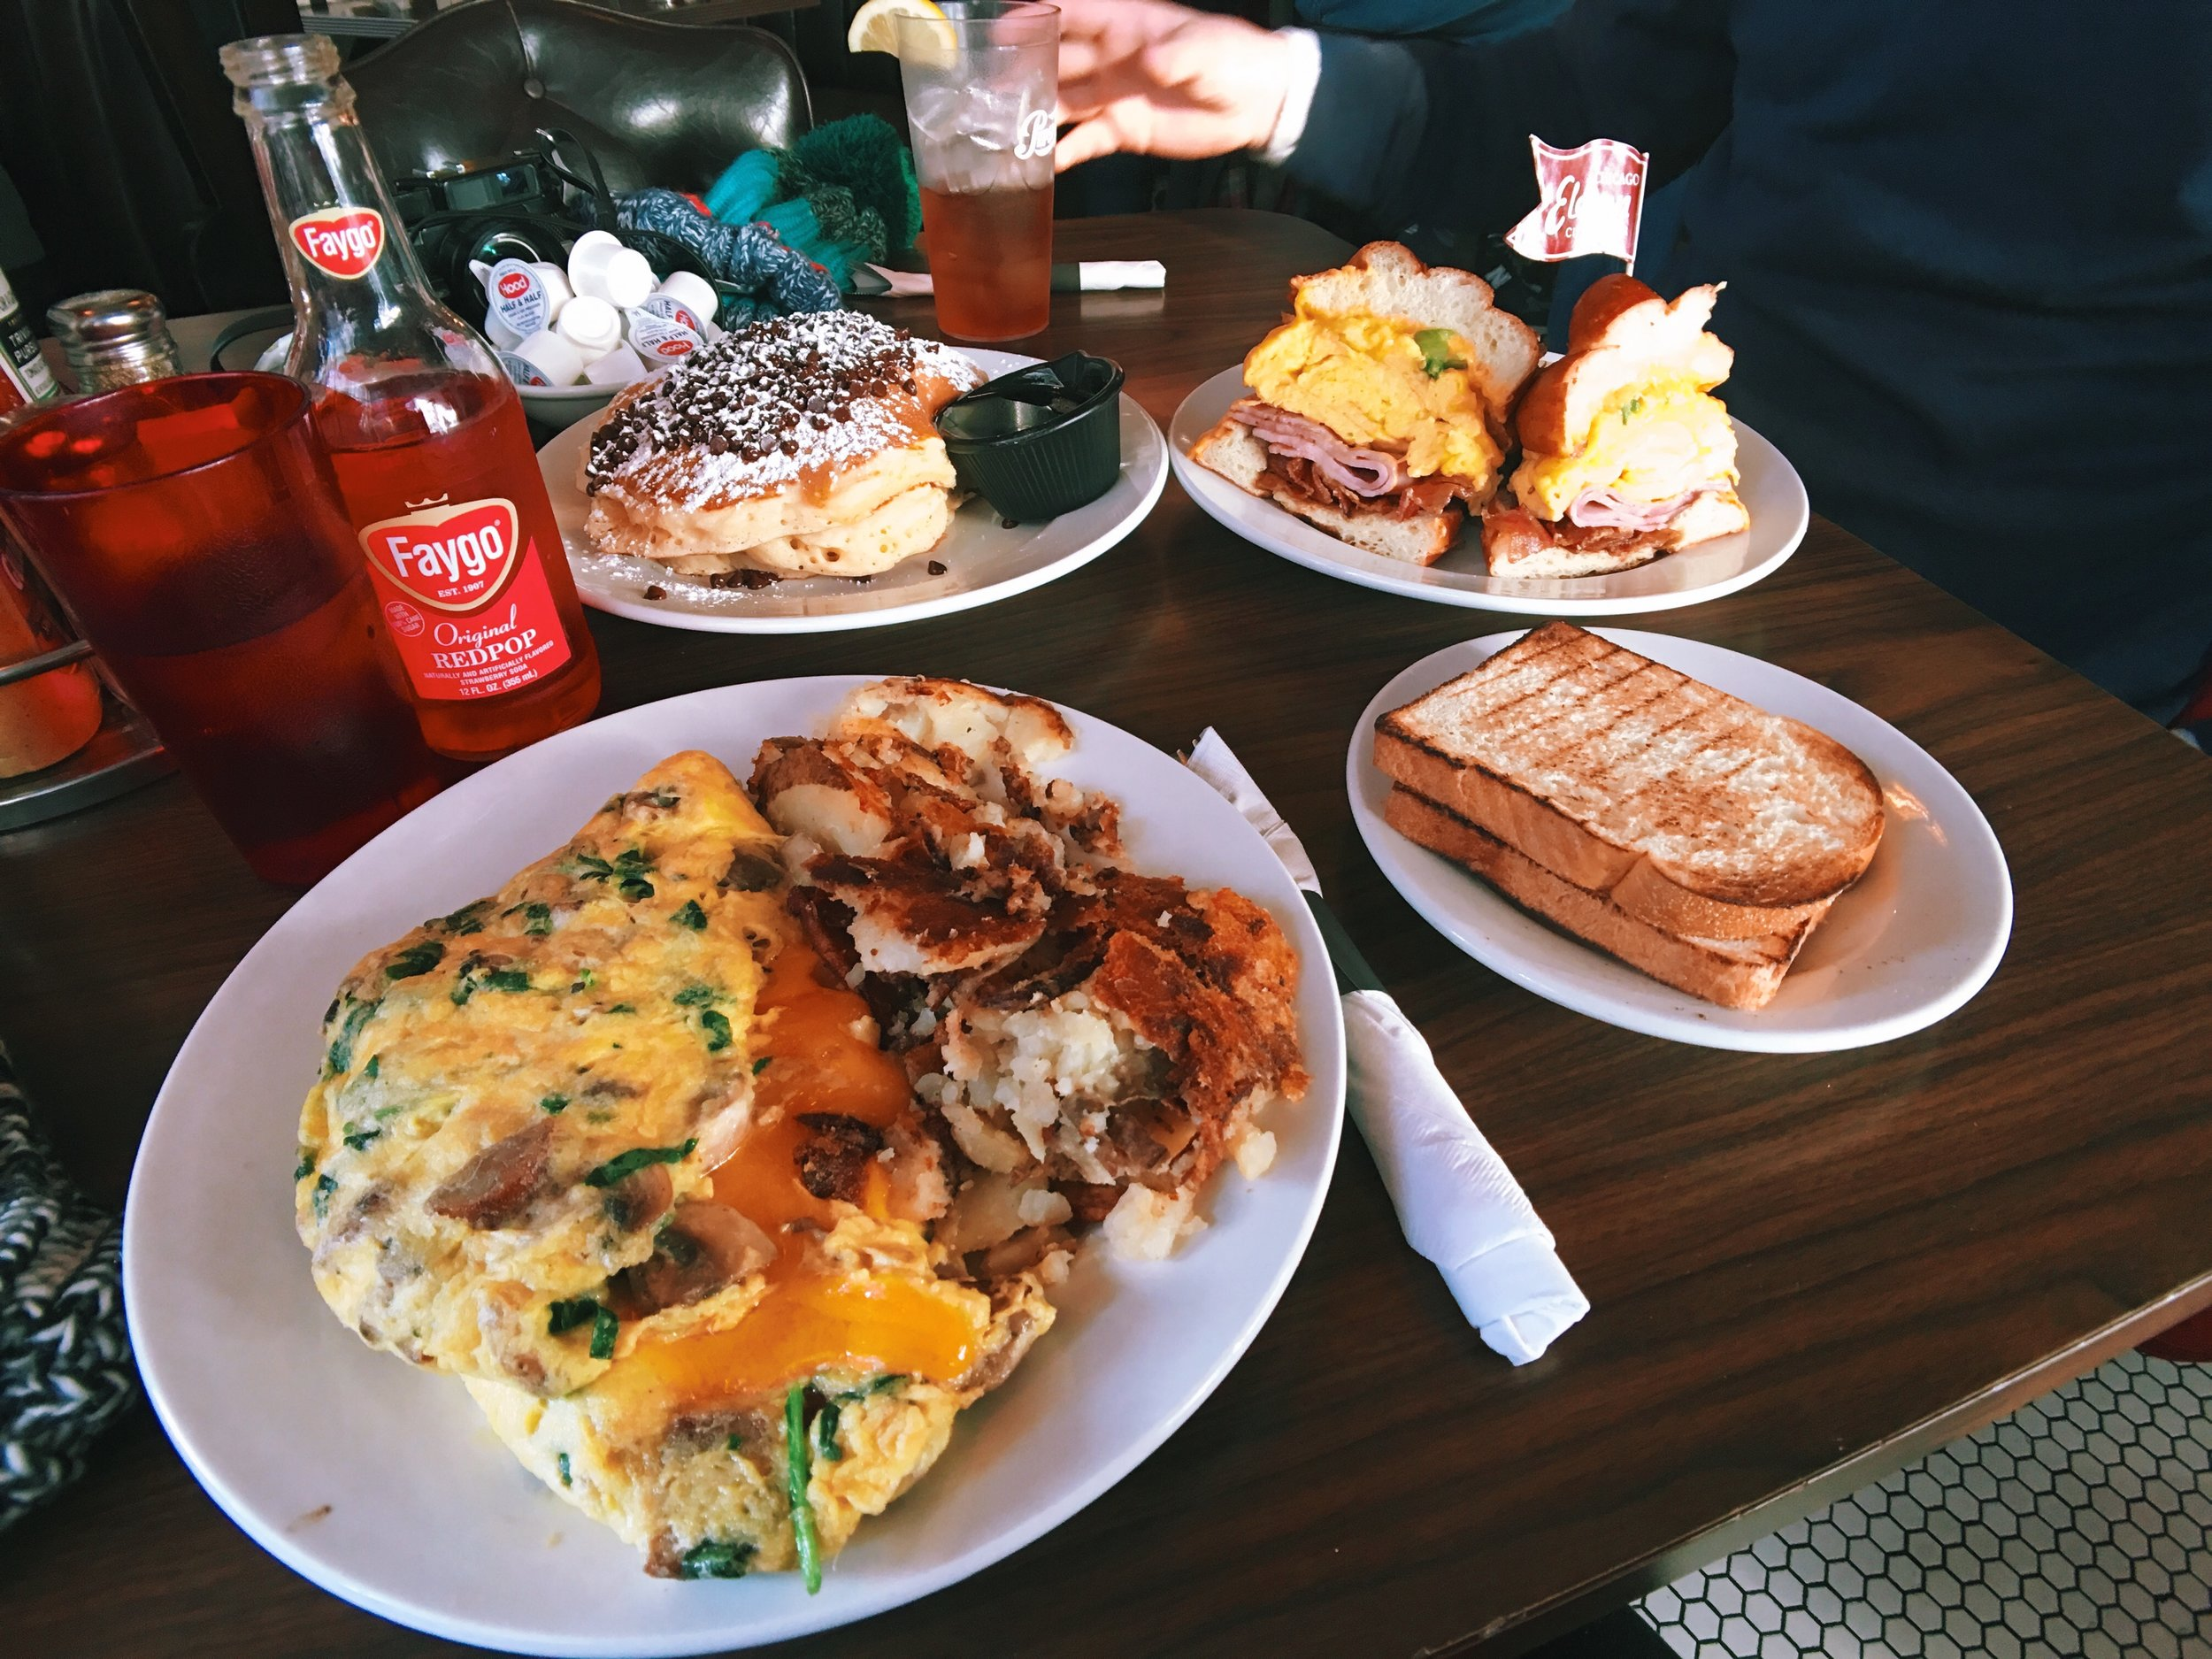 Brunch at Eleven City Diner in Chicago, IL